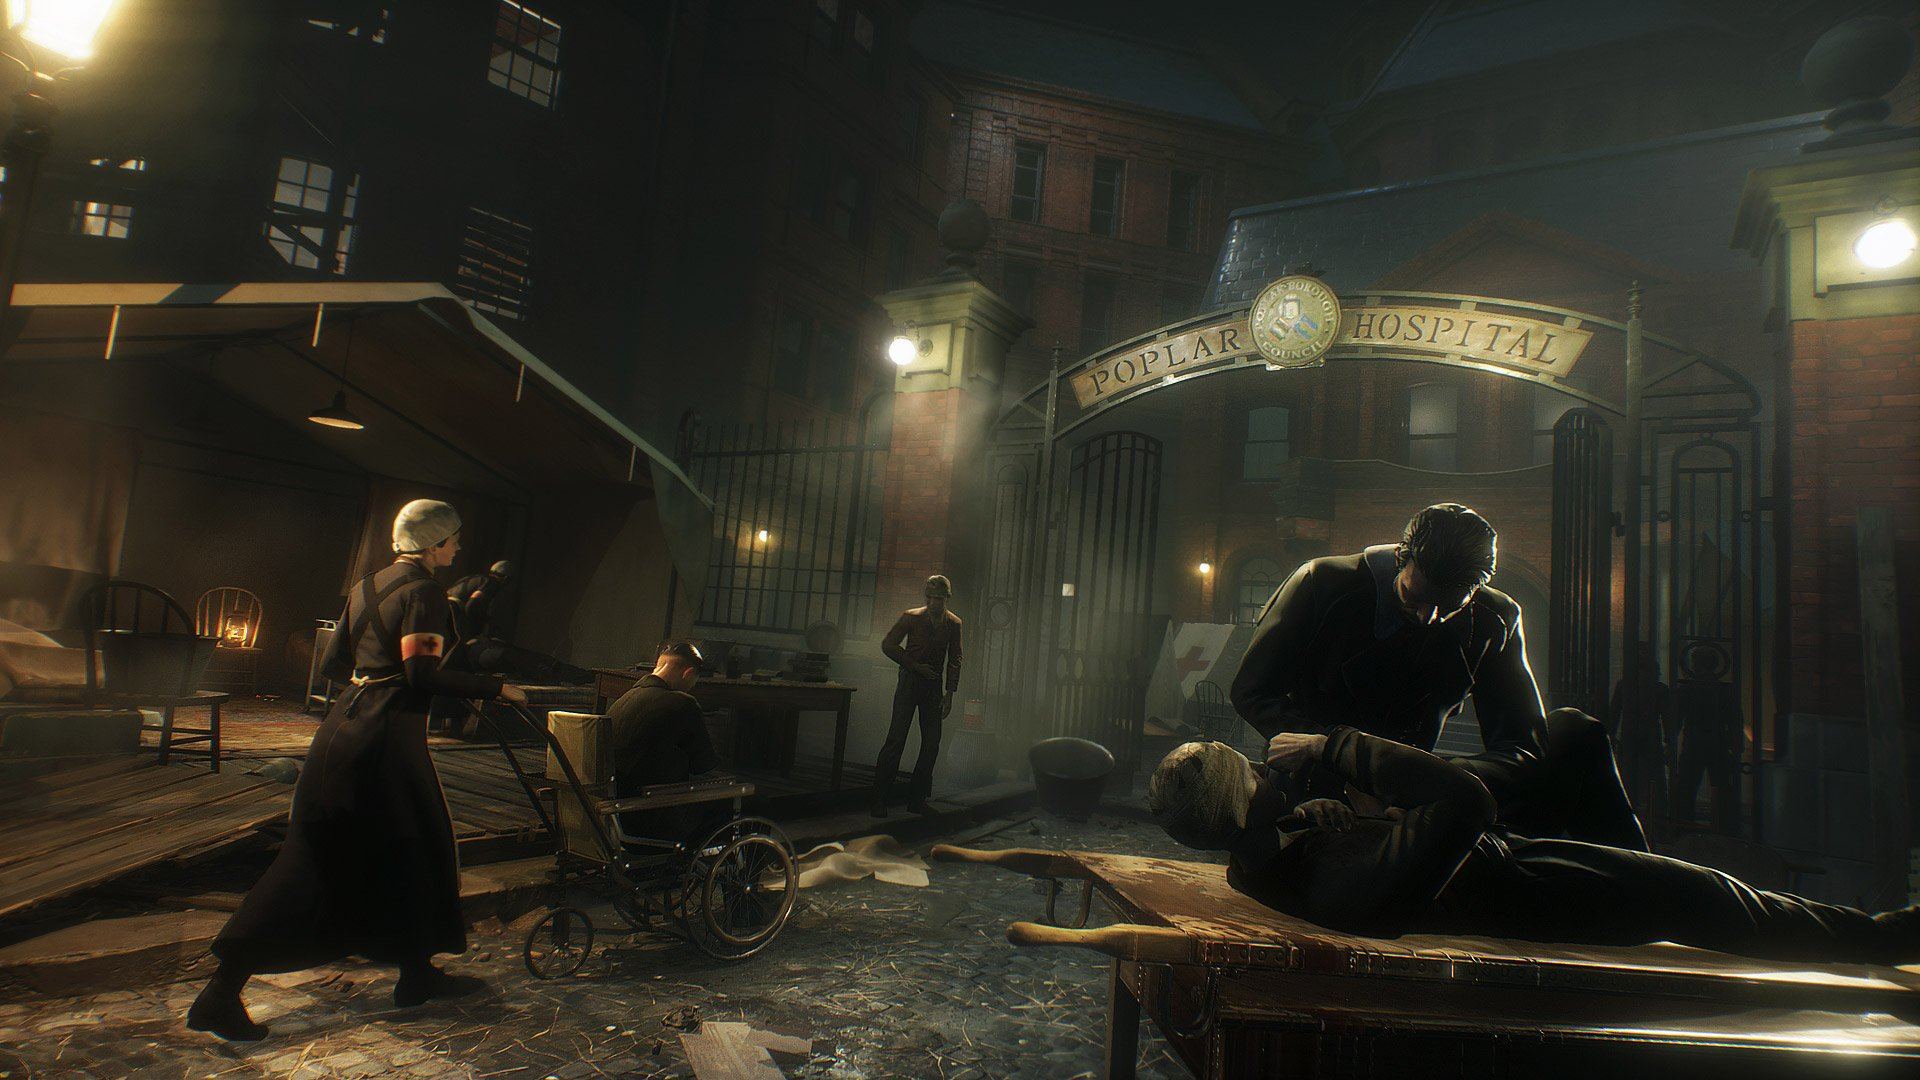 Vampyr game from Dontnod Entertainment